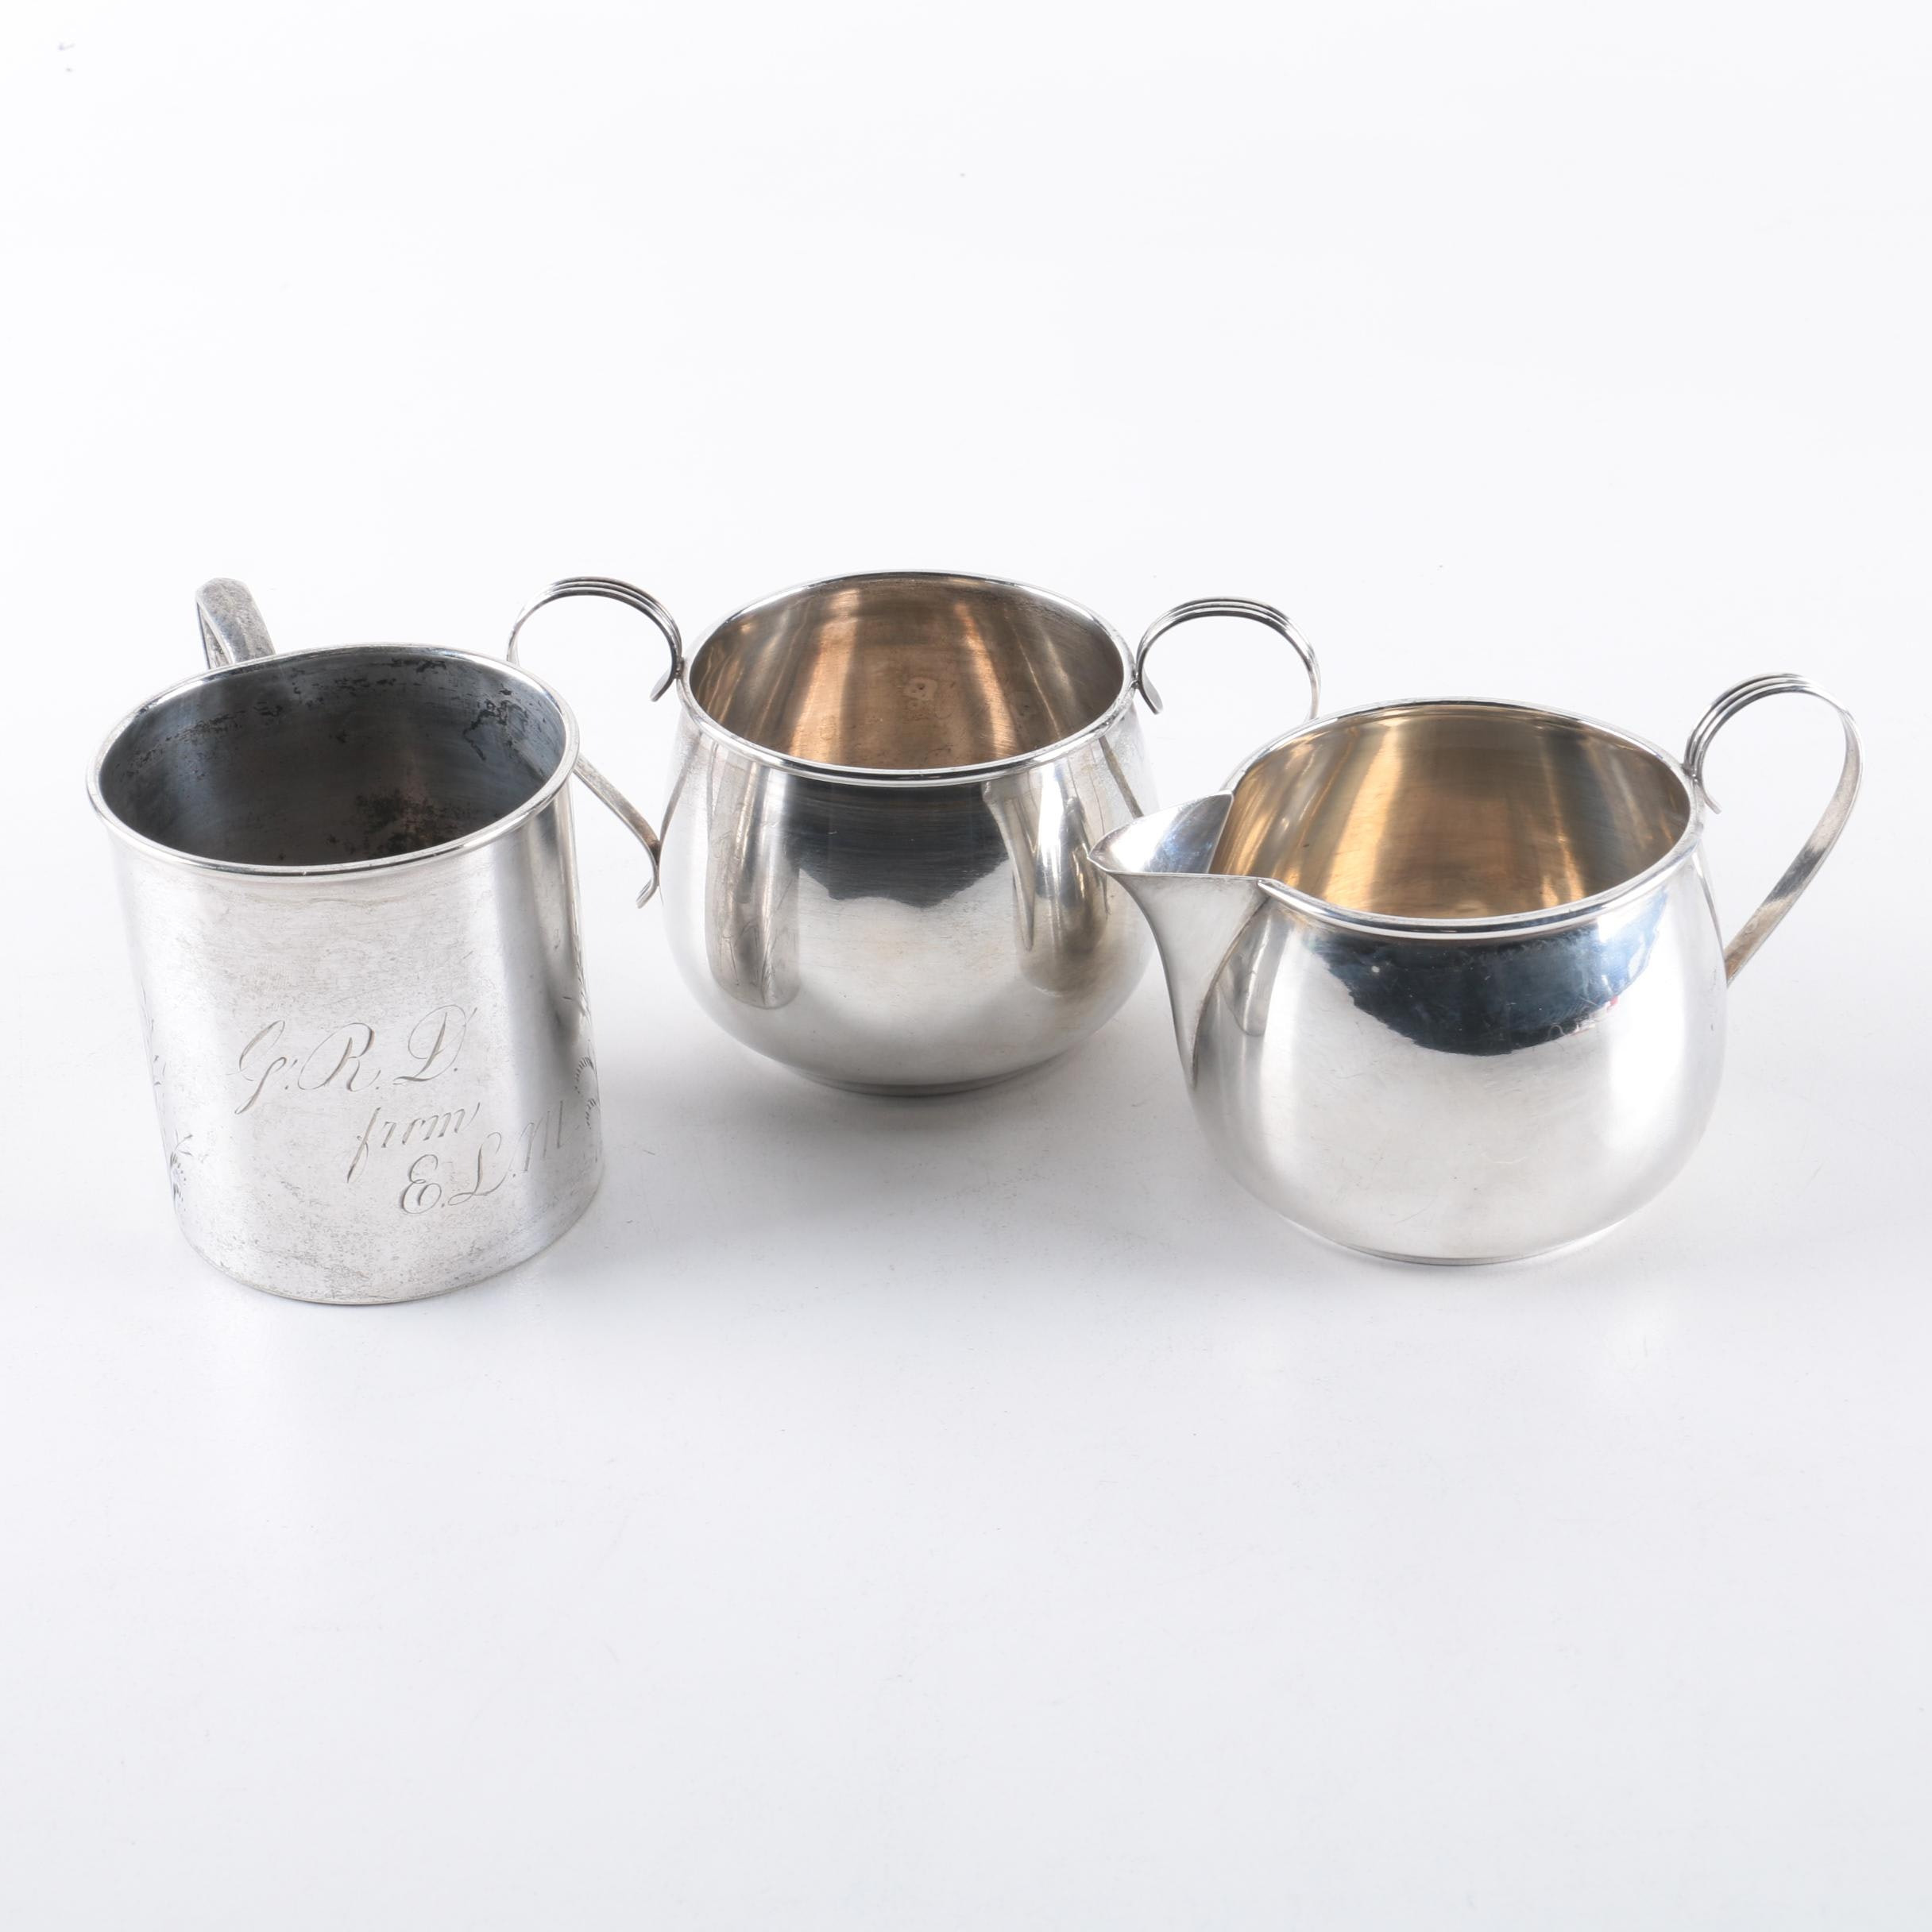 Watrous Mfg. Co. Sterling Silver Sugar and Creamer Set and Silver Plate Cup